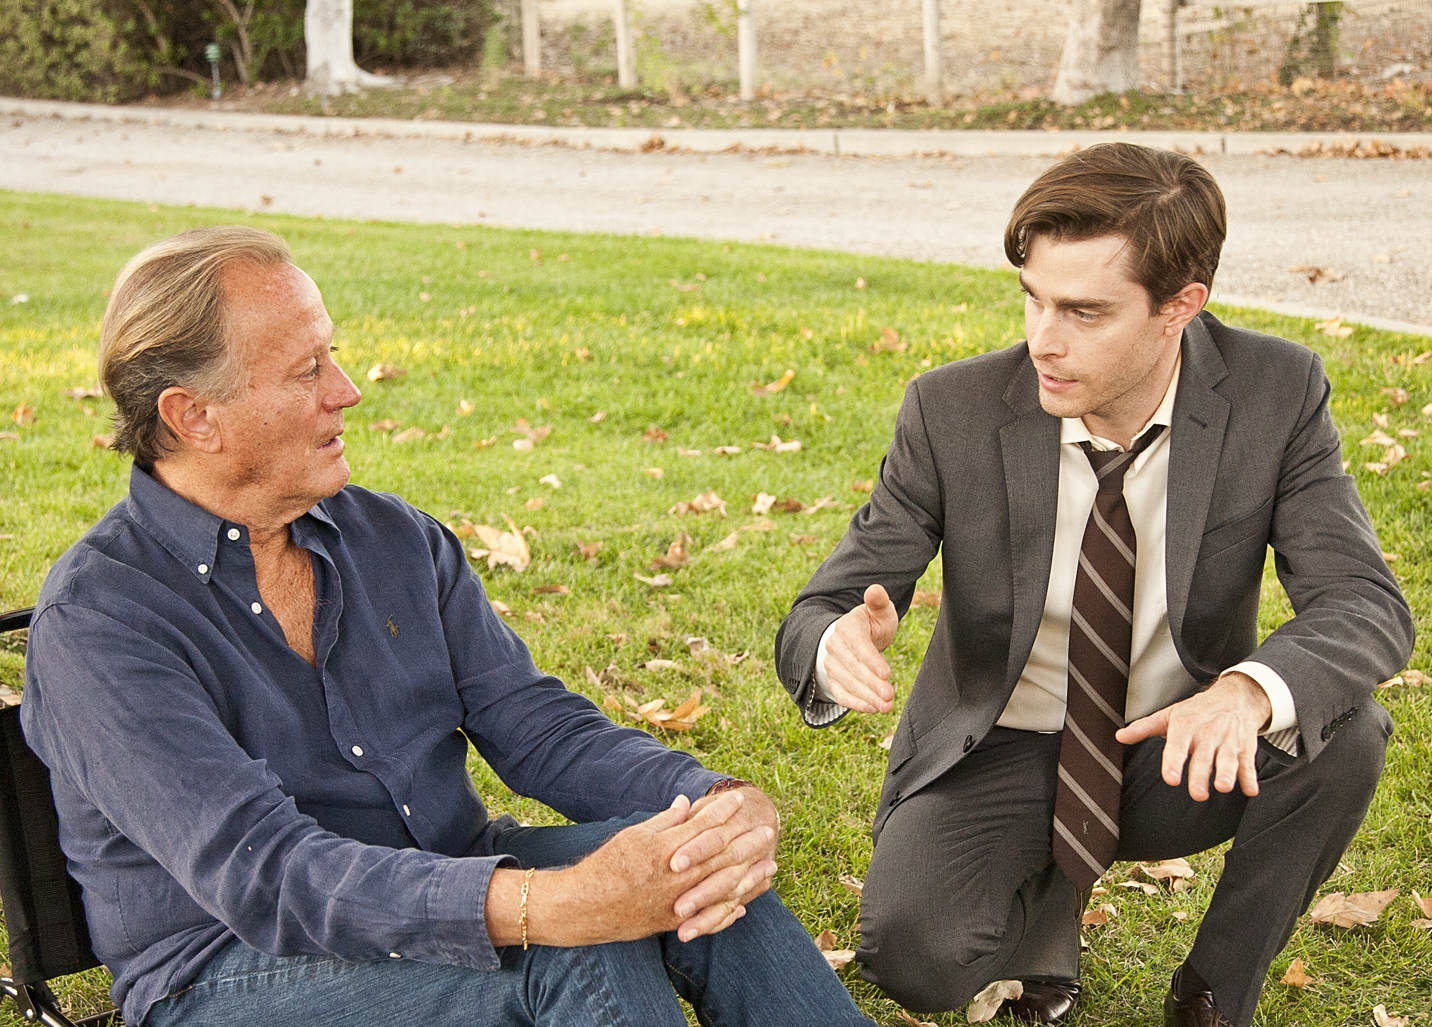 David Connelly directs Peter Fonda on the set of The Magic Hours The Magic Hours - a film by Zoey Taylor and David Connelly